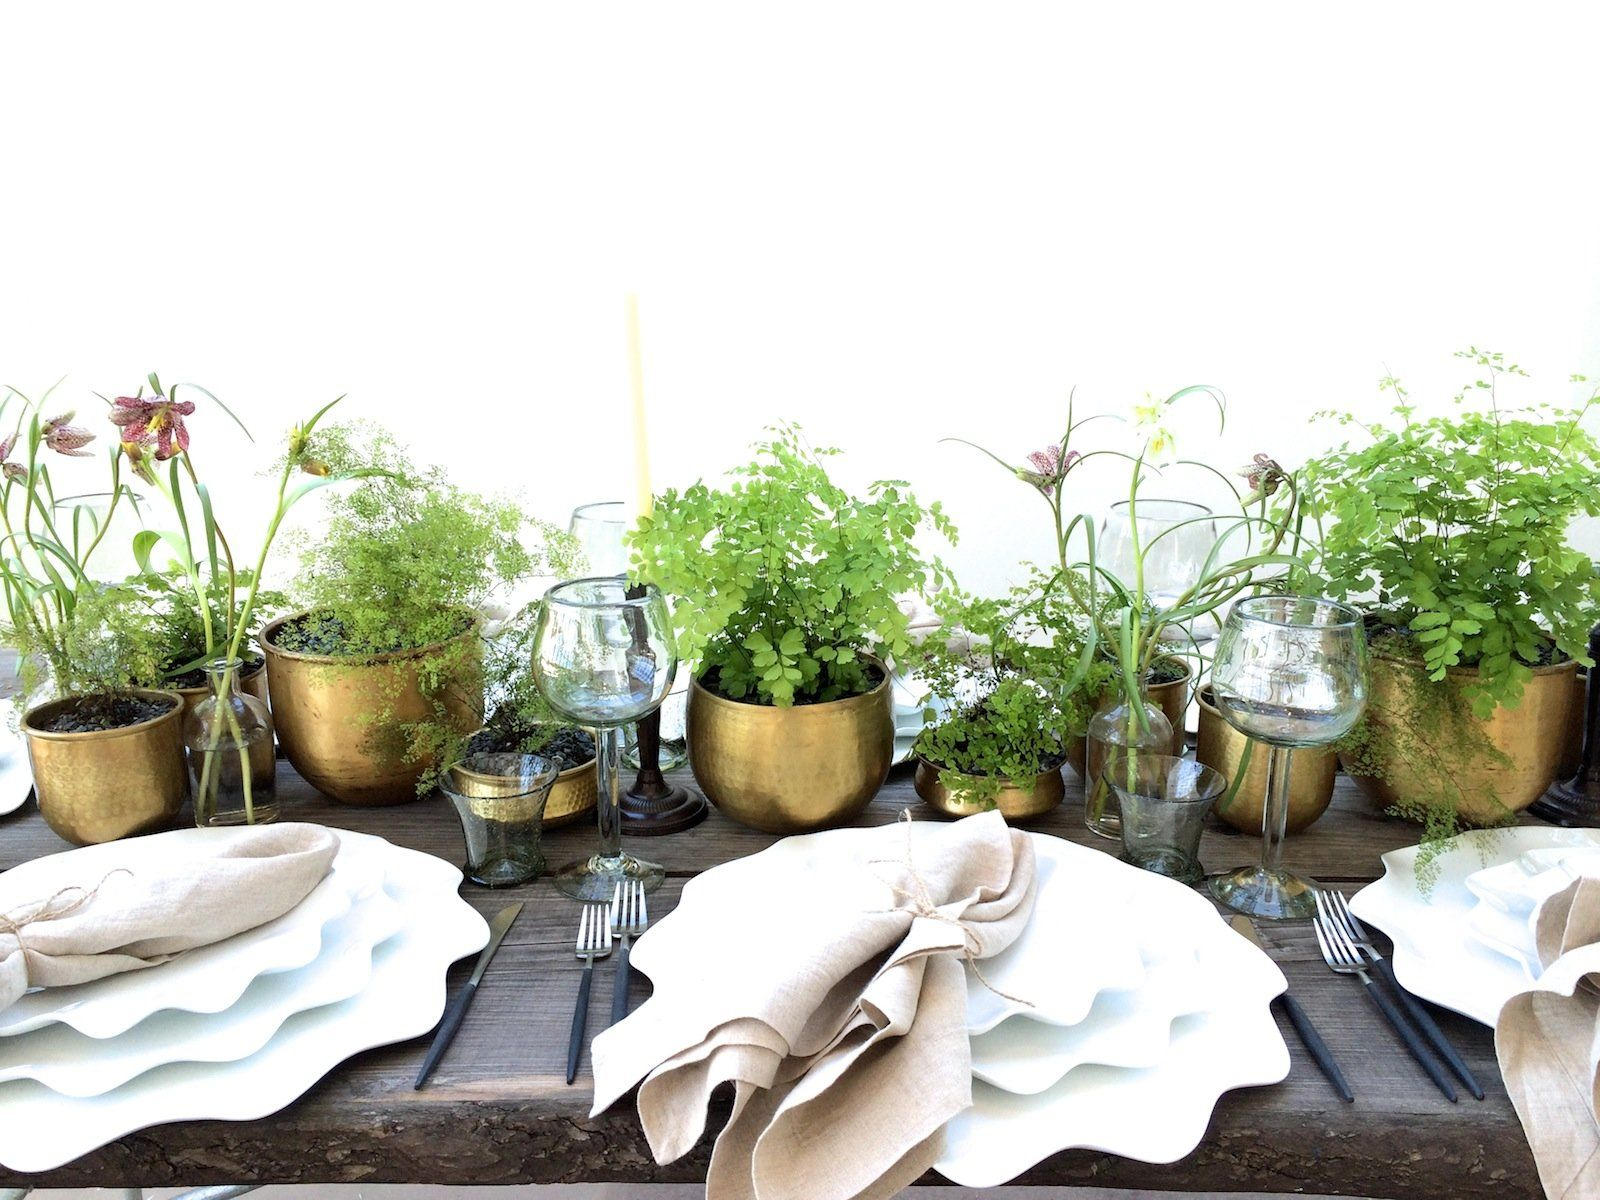 Potted Plants Wedding Centerpiece Look For Groupings Of Plants, Says